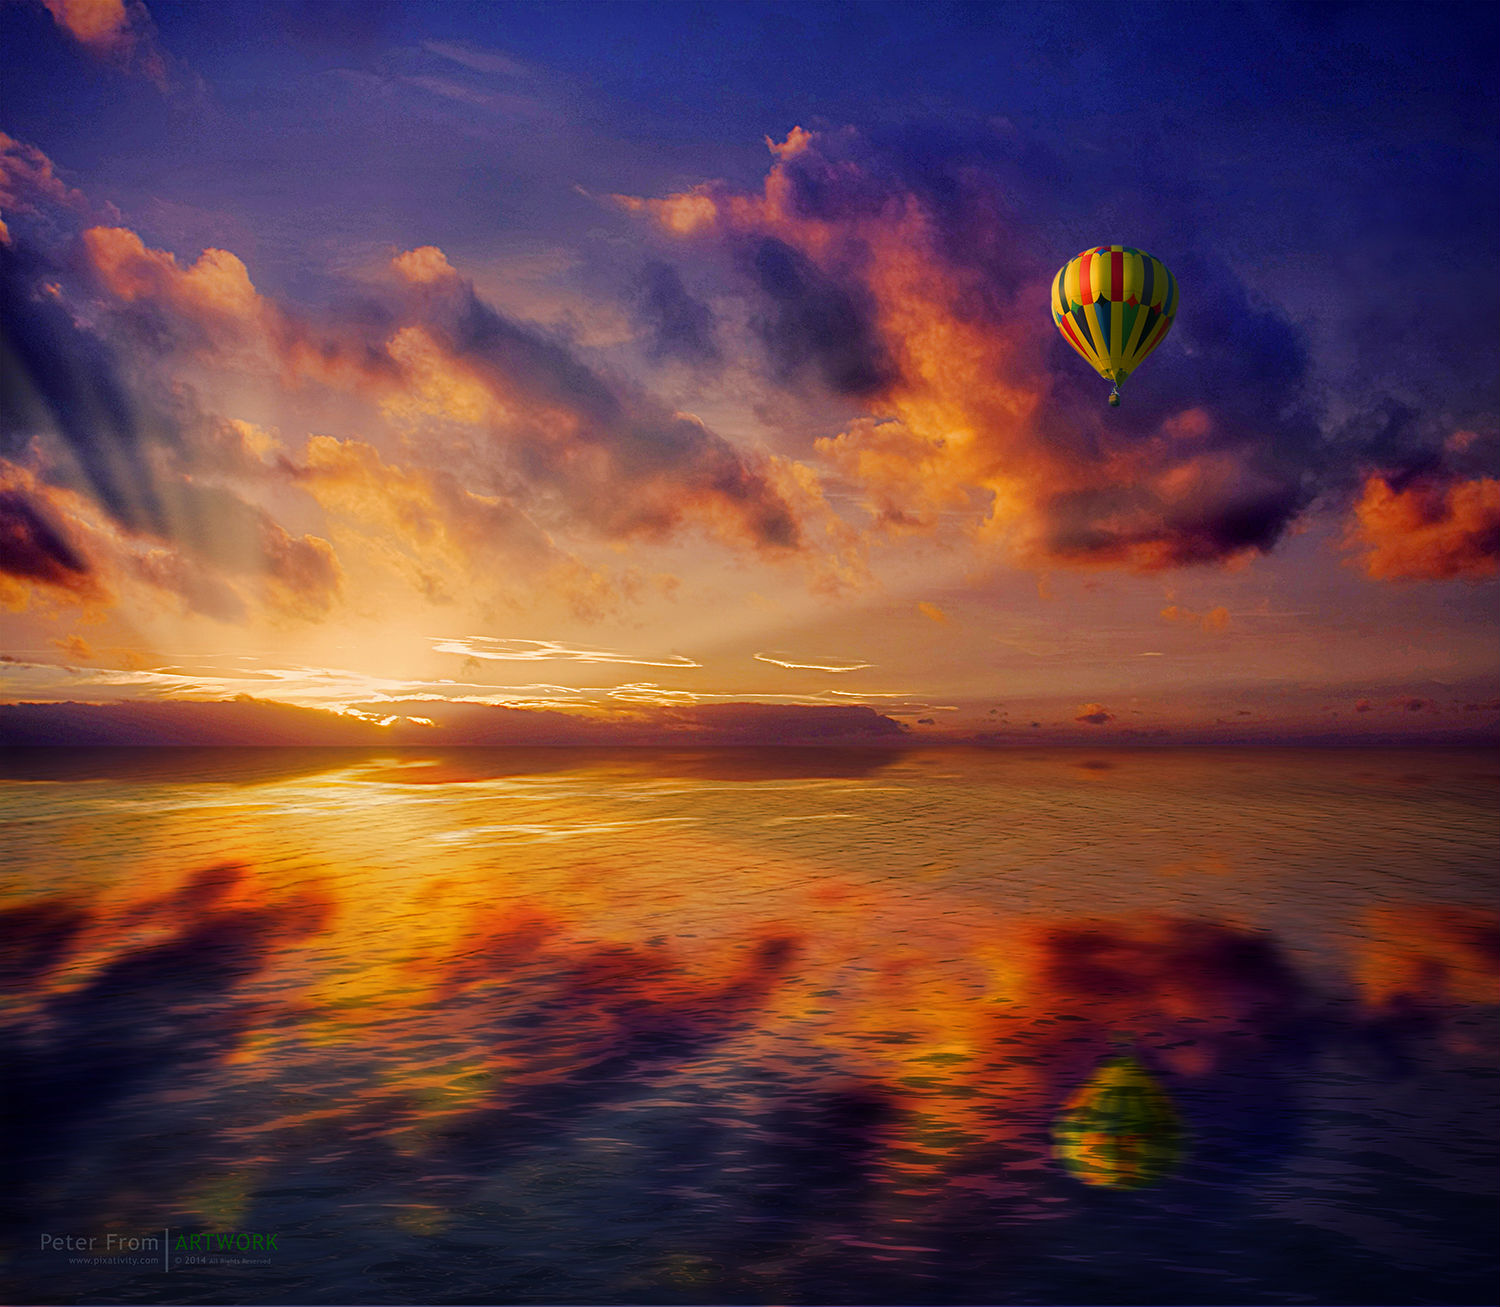 peter from photography colour sunset sky sea hot air balloon